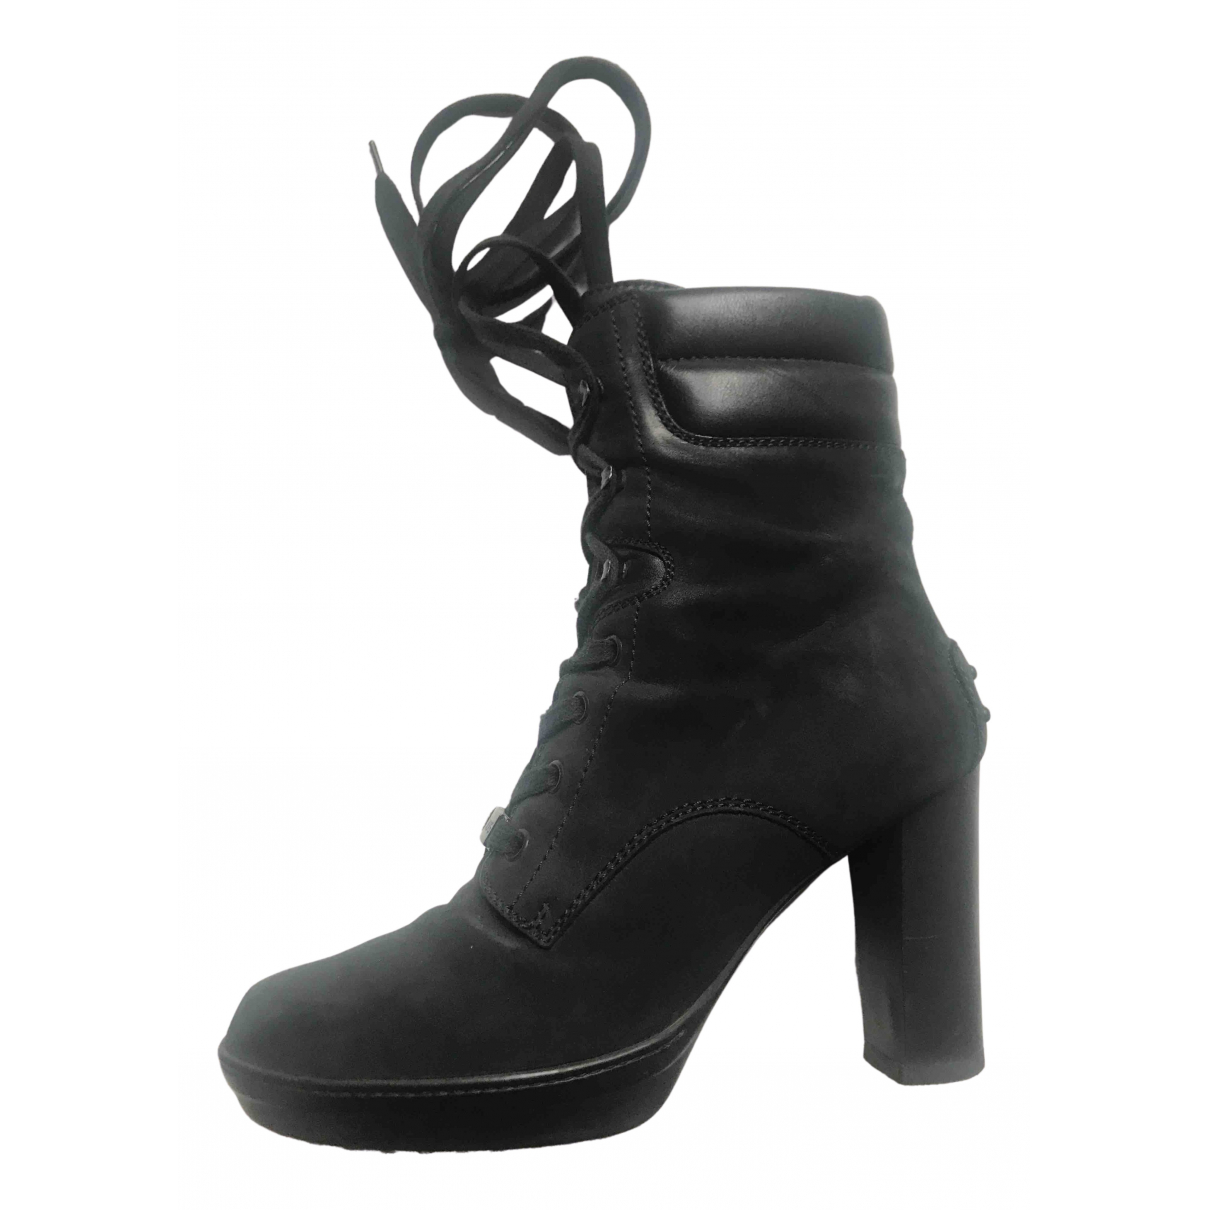 Tod's N Black Suede Ankle boots for Women 37.5 EU